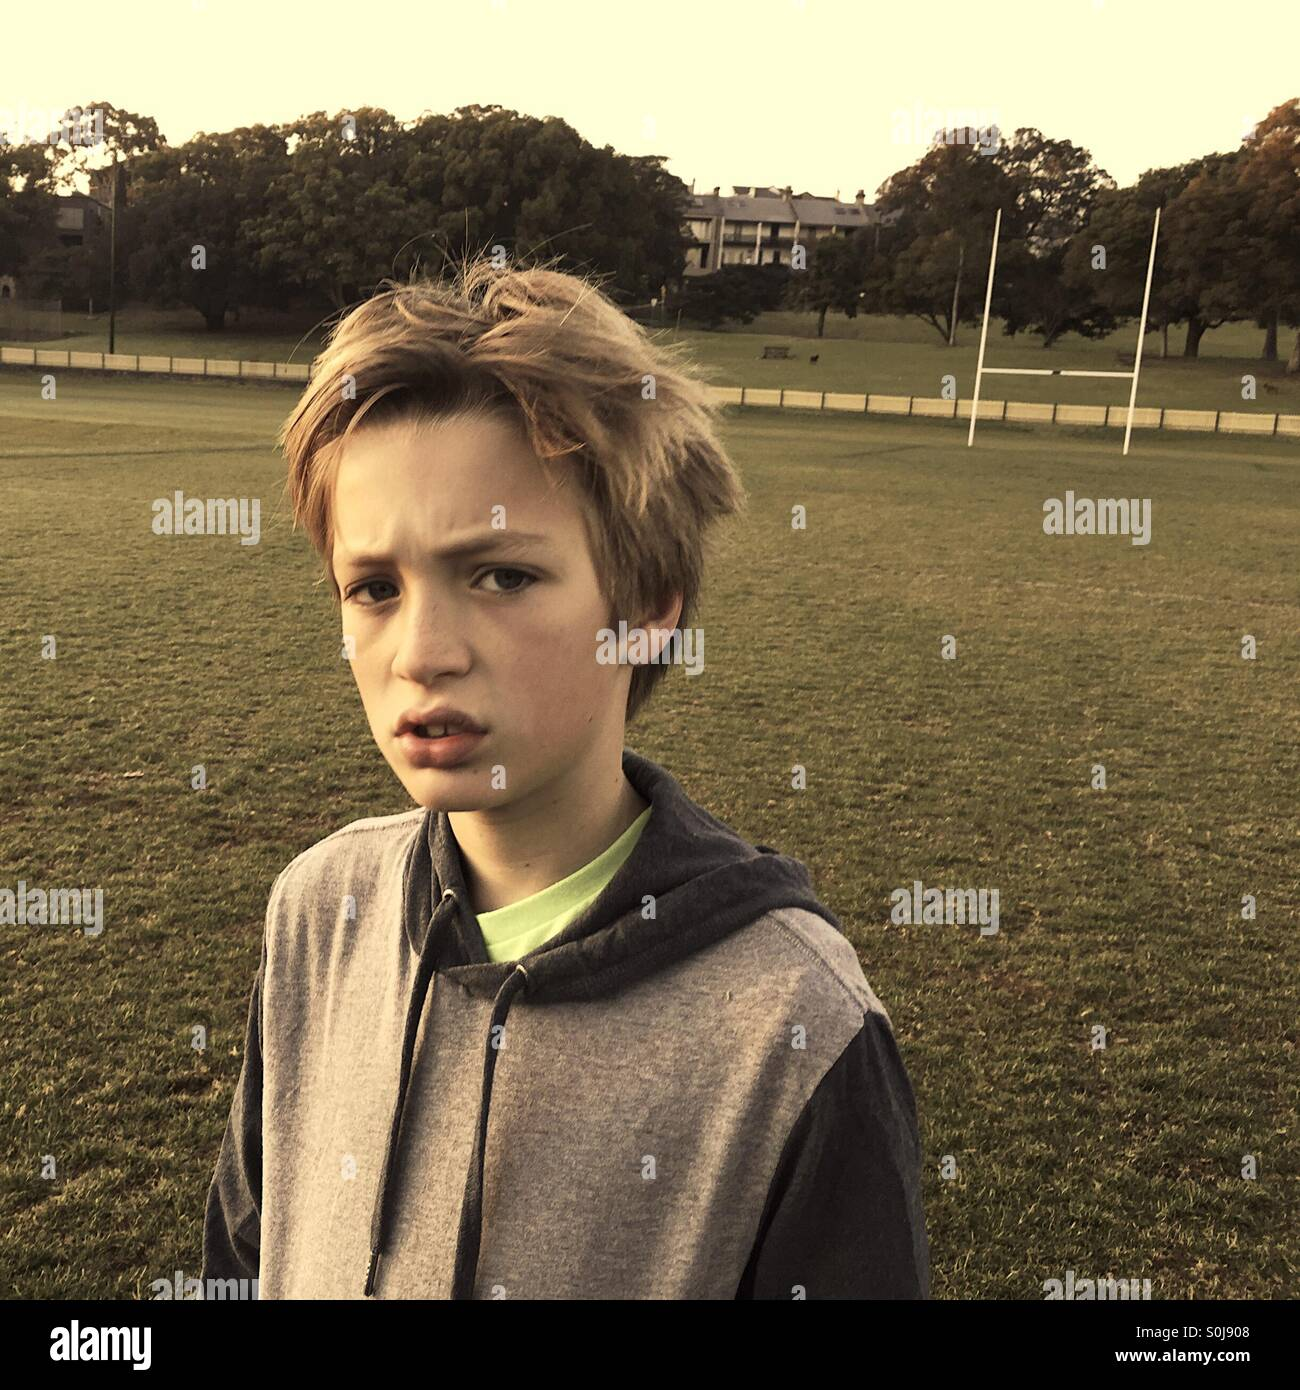 Boy on playing field - Stock Image